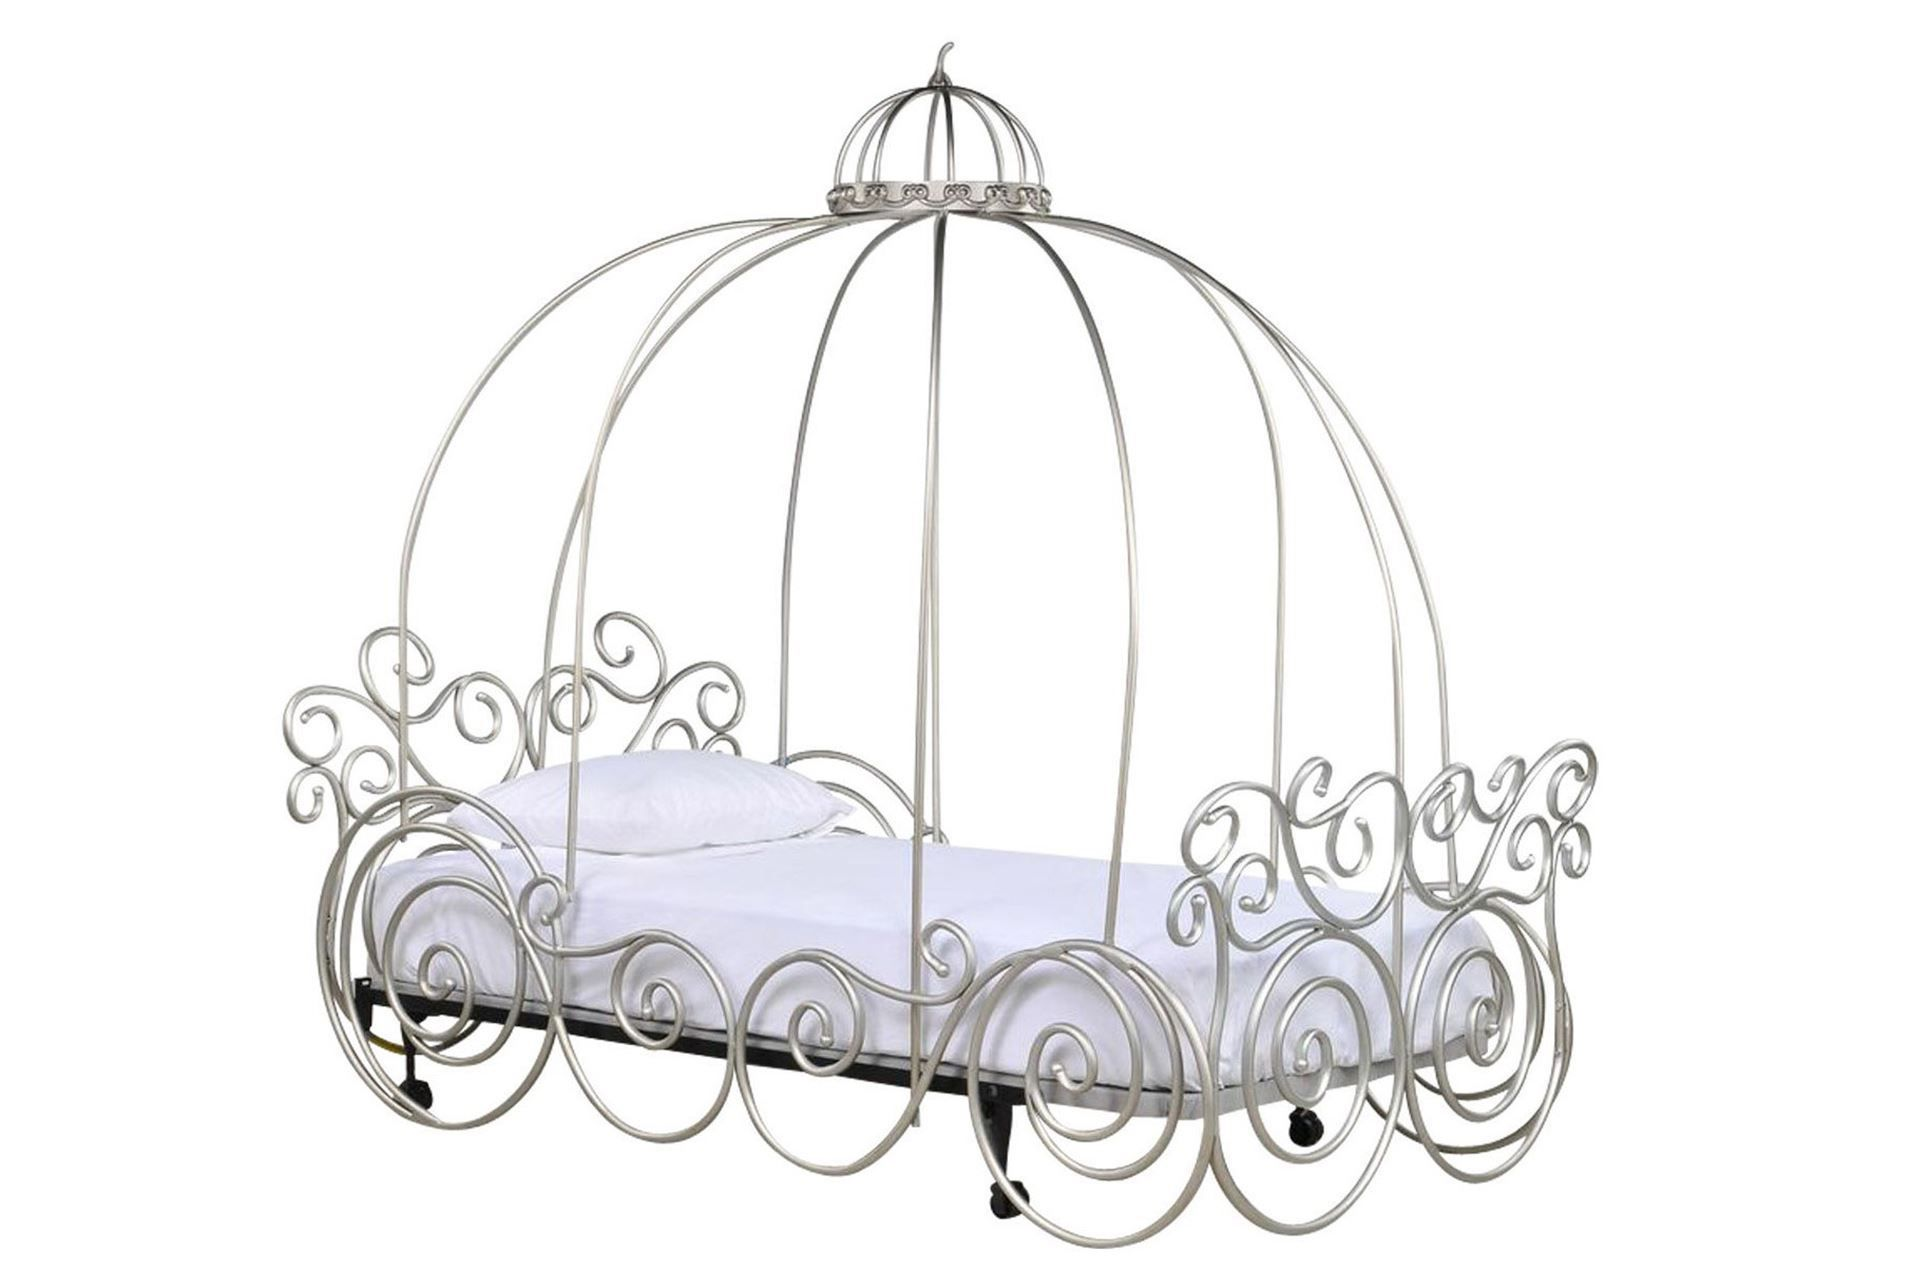 Disney Princess Full Carriage Bed Girly room decor